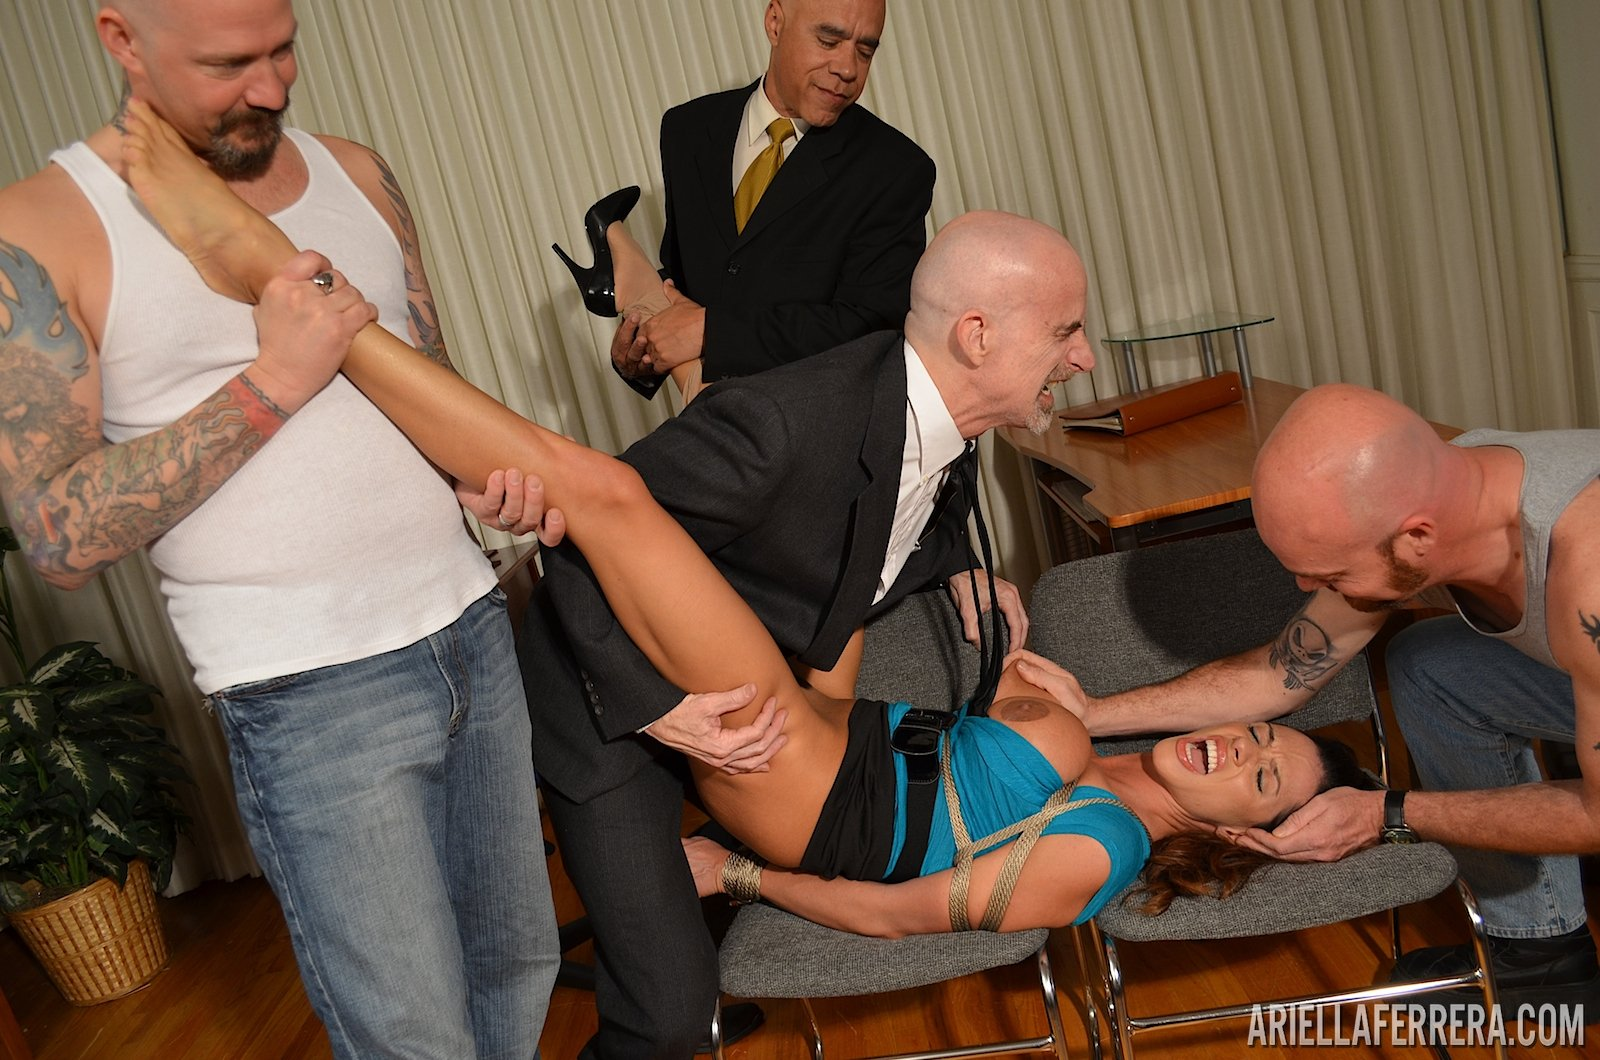 Bound up at the beatch twinks have fun 9